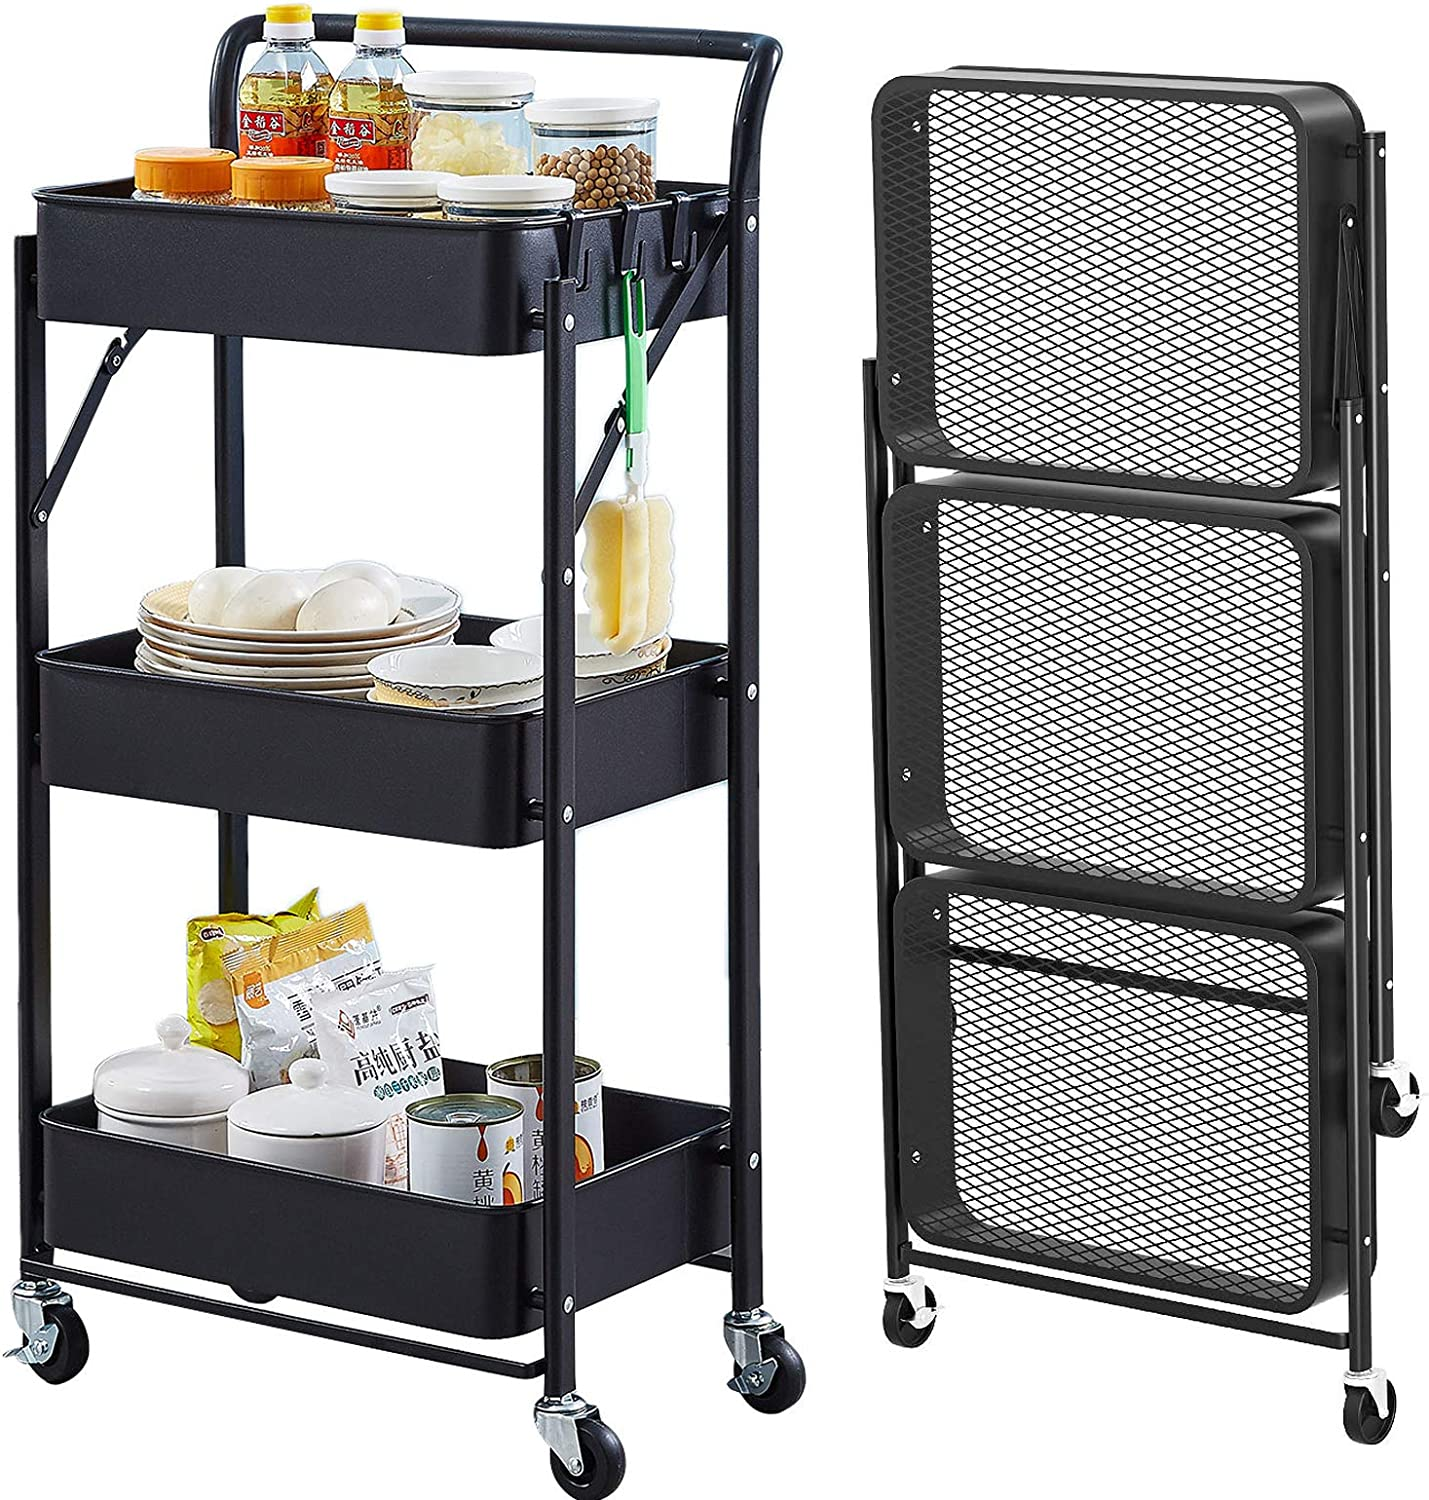 asunflower 3 Tier Foldable Storage Max 56% OFF Util Wheels Cart New Free Shipping with Folding